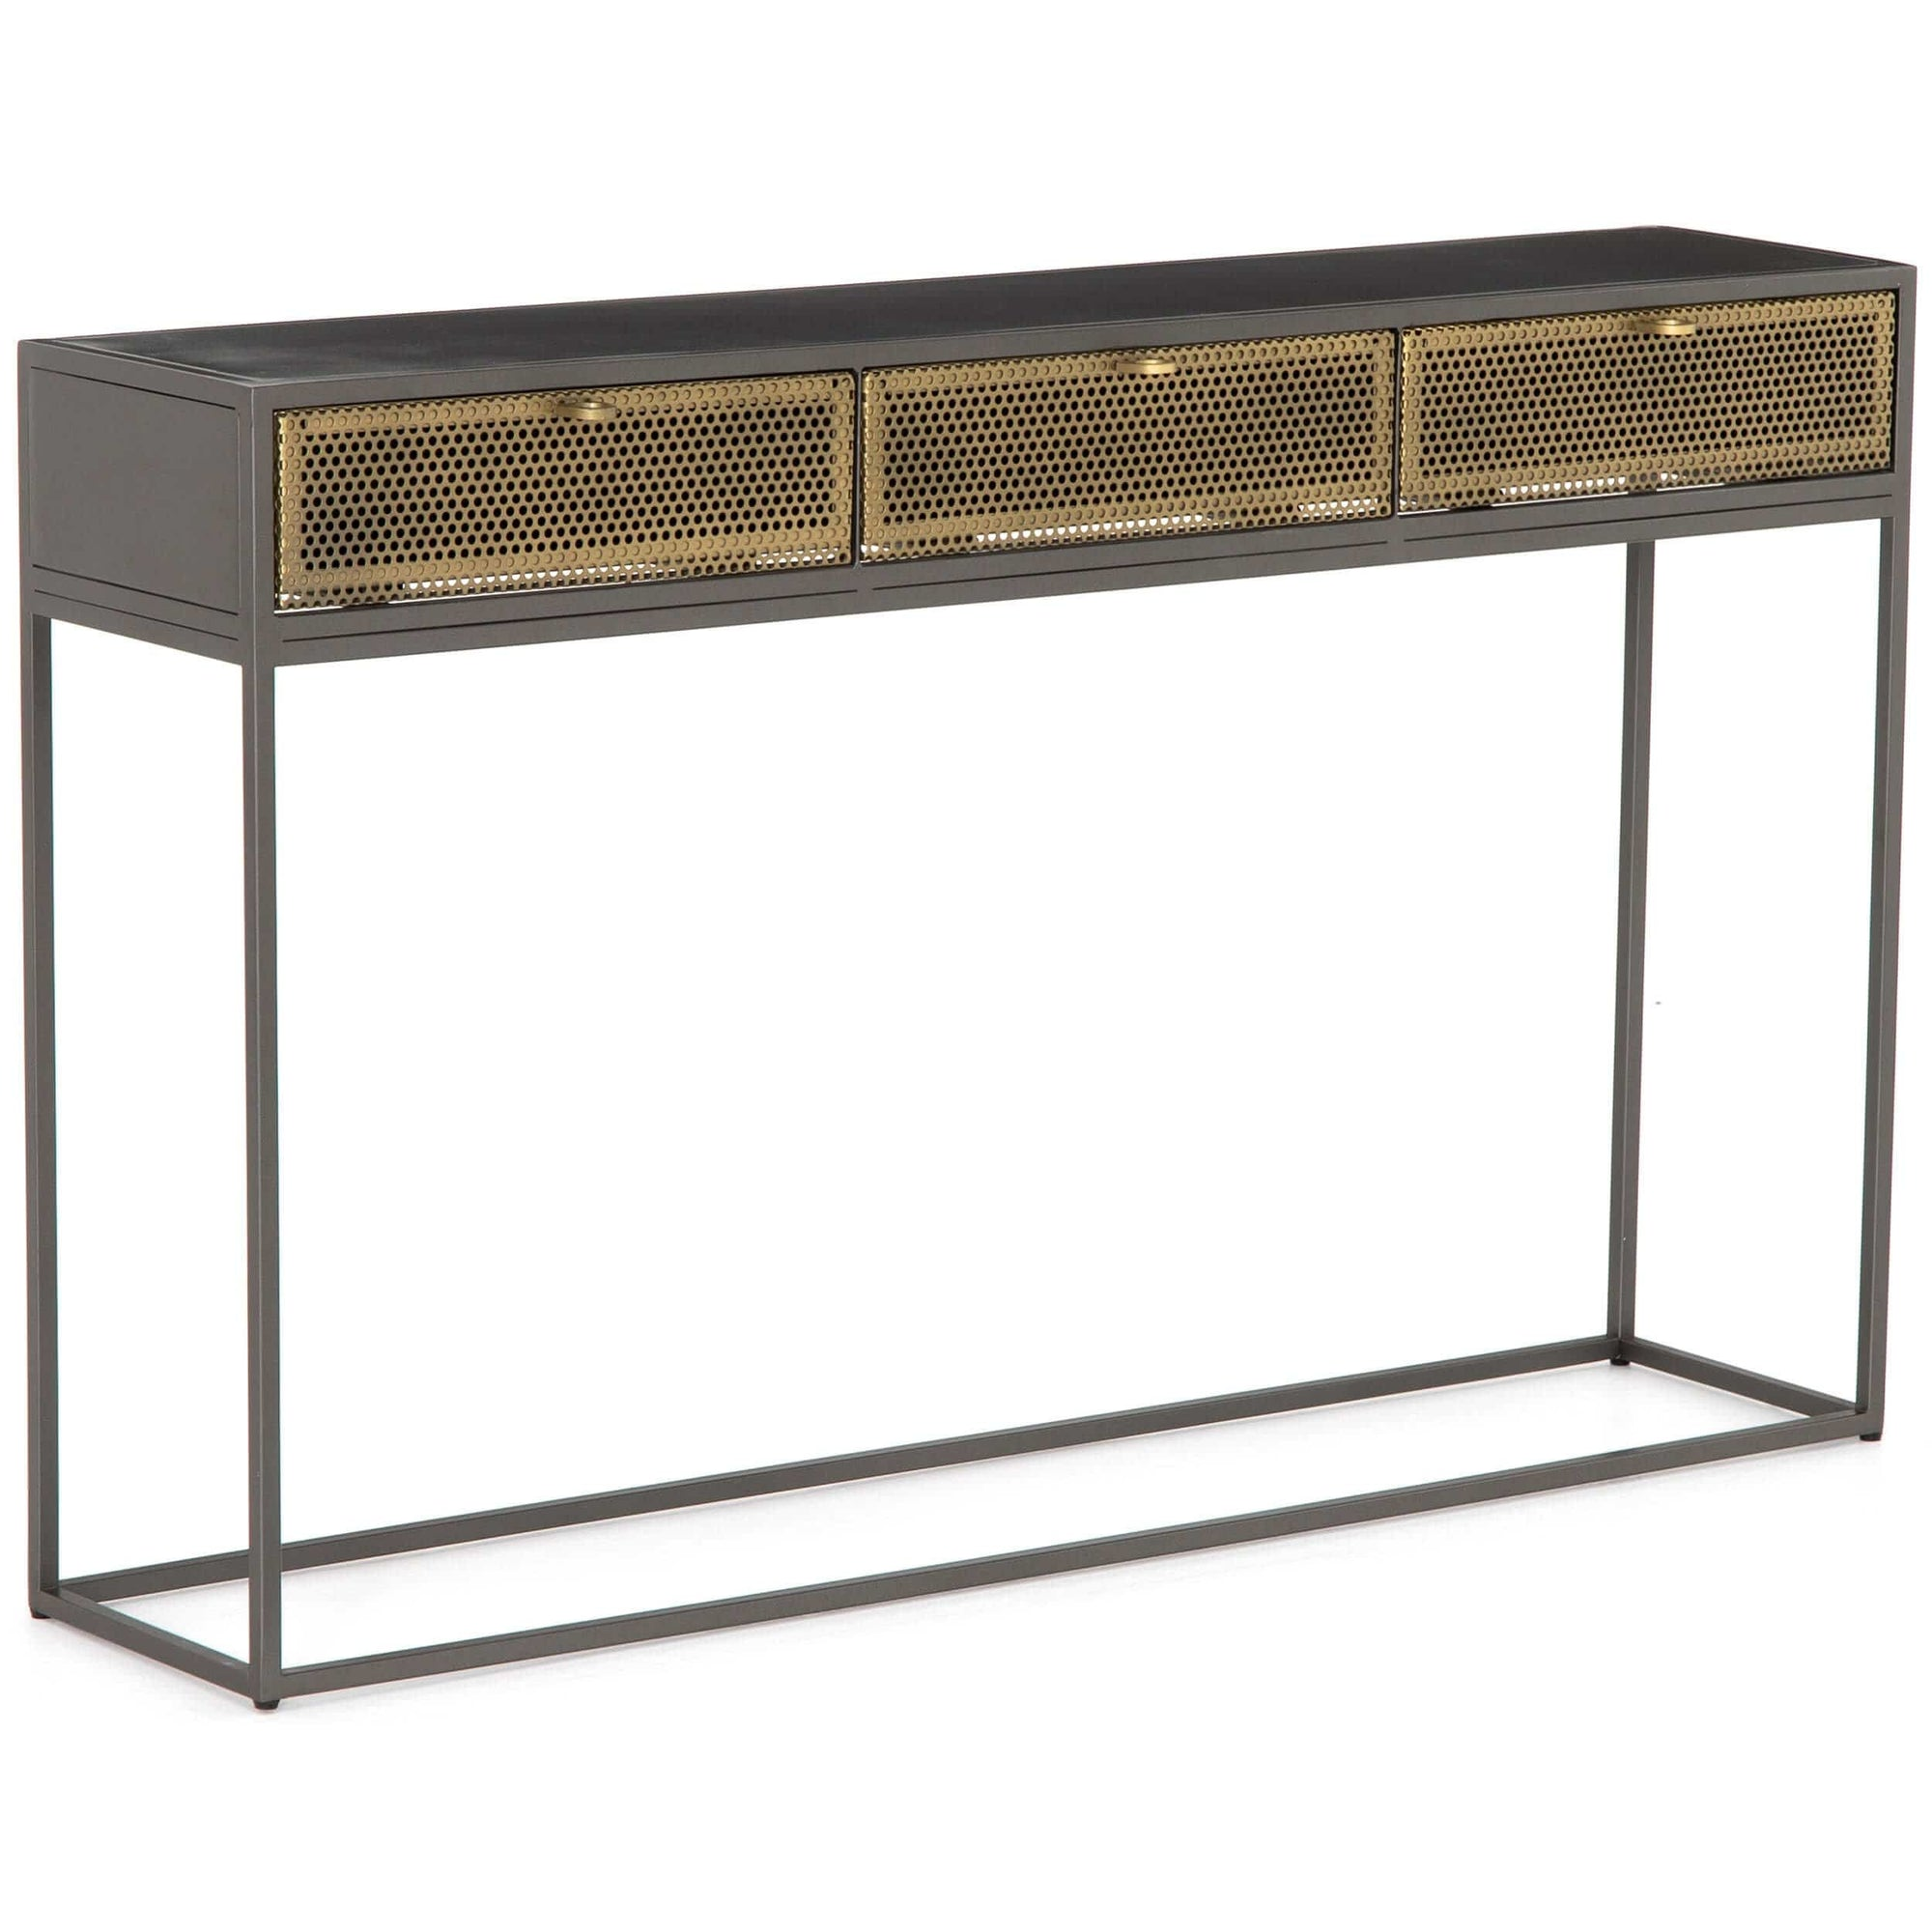 Pleasing Hendrick Console Table High Fashion Home Gmtry Best Dining Table And Chair Ideas Images Gmtryco